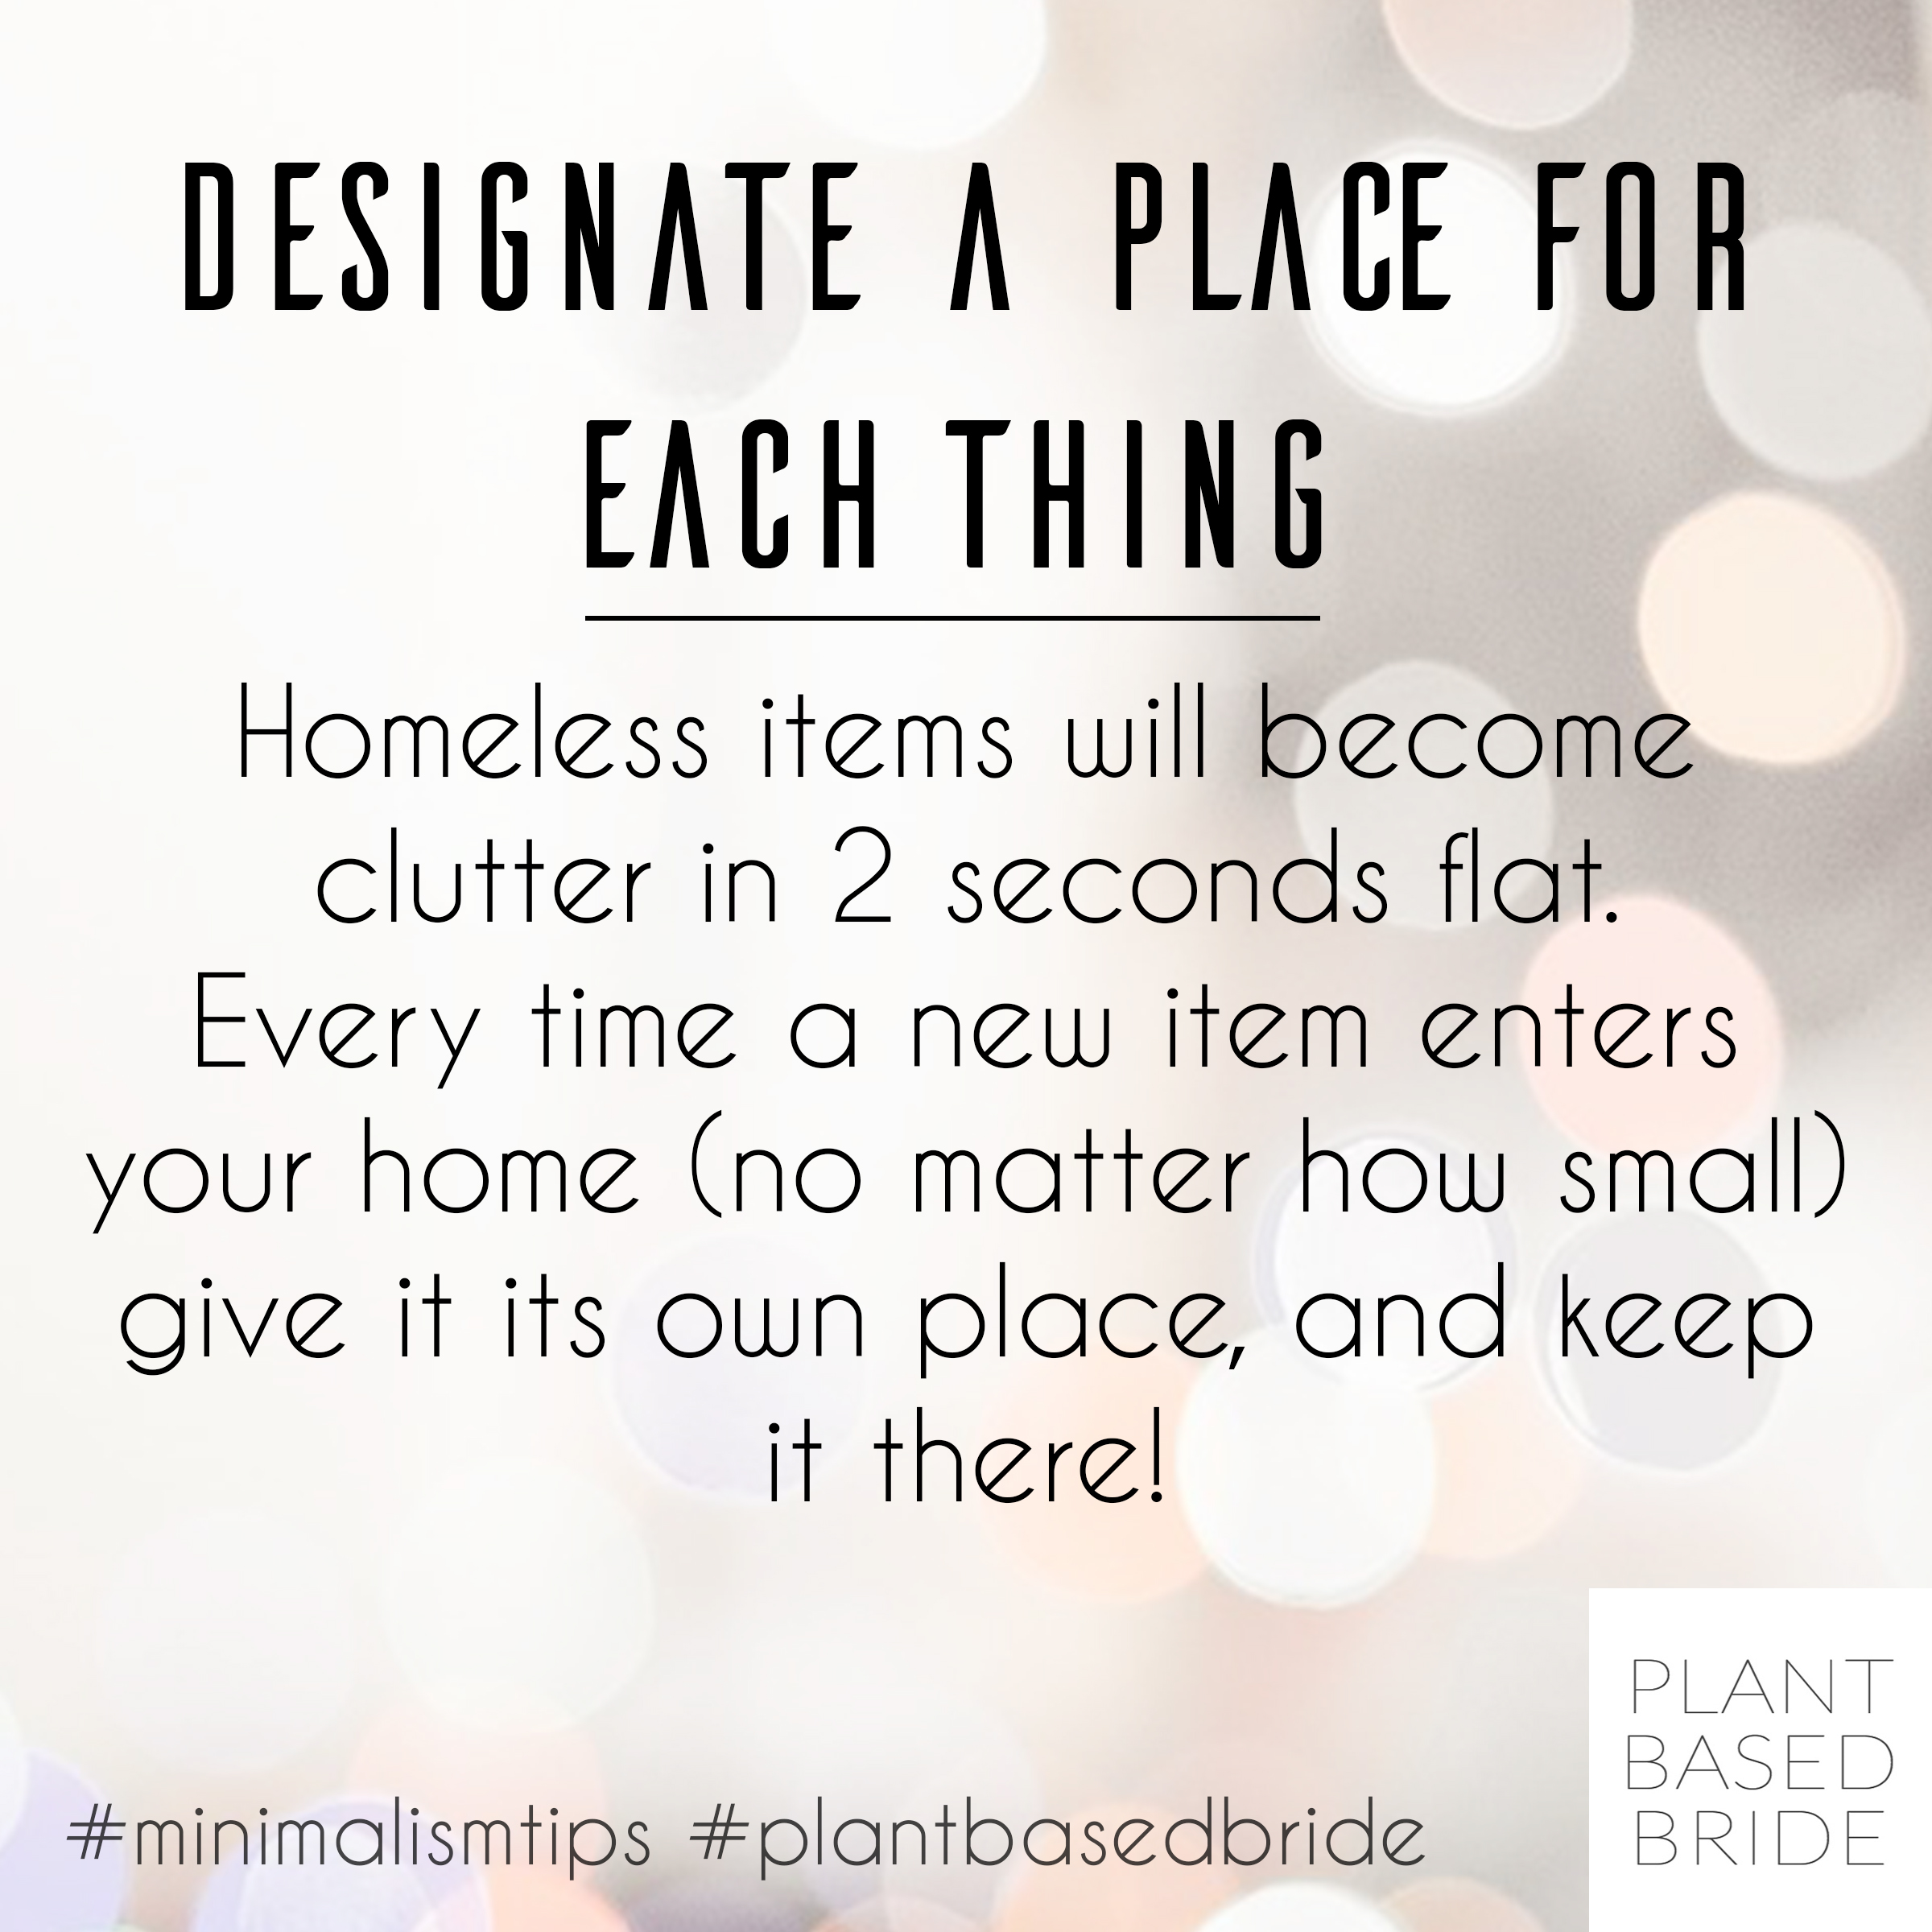 Ever wonder why clutter builds so quickly?  Try designating a place for each thing! #minimalismtips #plantbasedbride #konmari